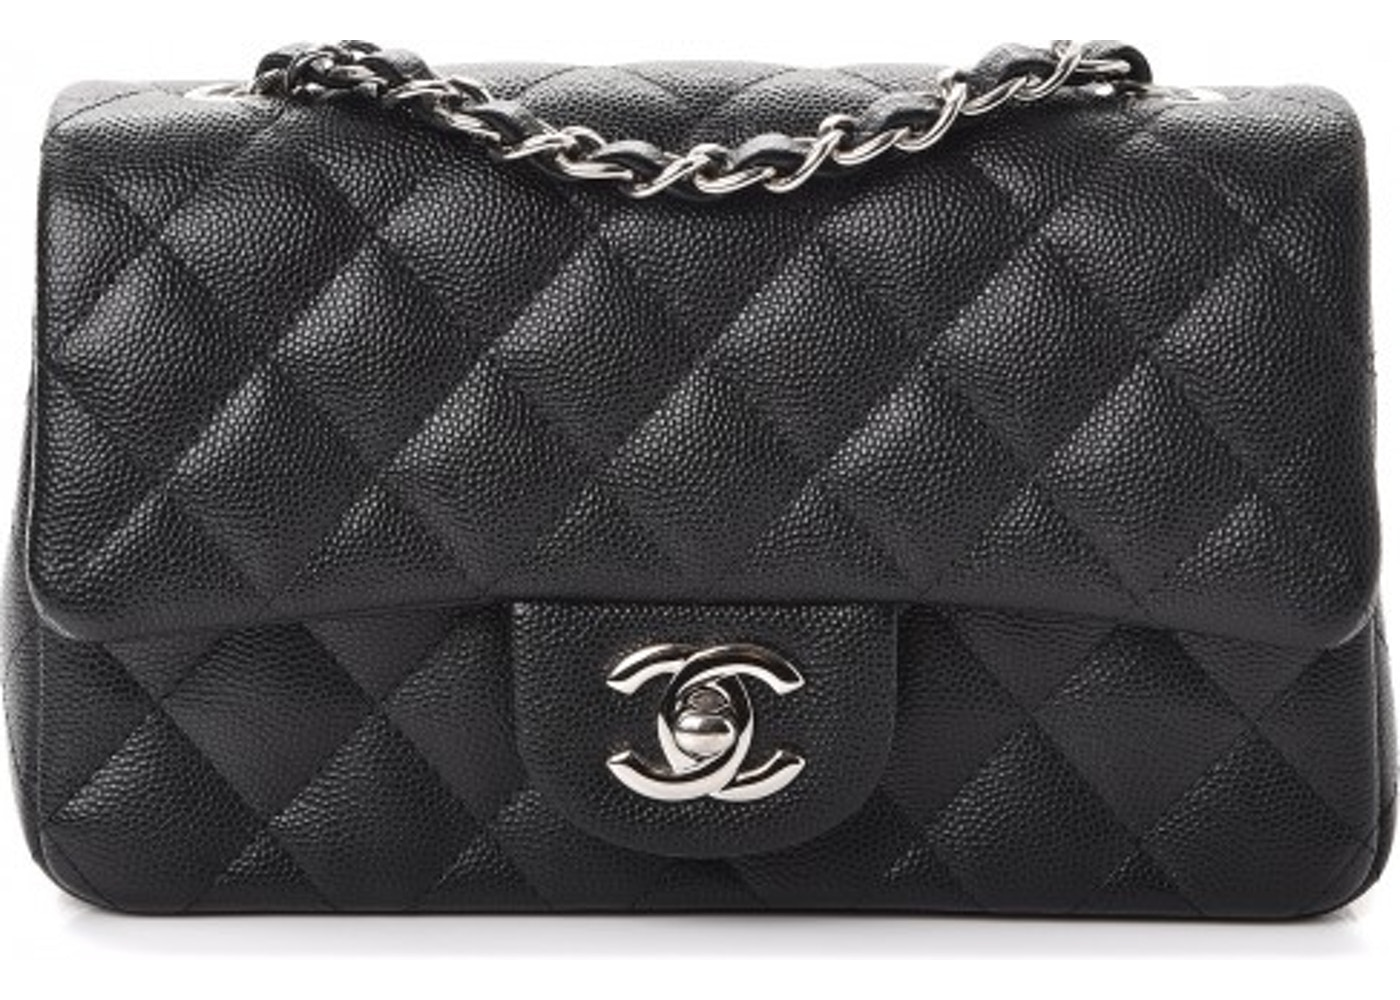 Chanel Rectangular Flap Quilted Diamond Mini Black/Burgundy by Chanel, available on stockx.com for $3975 Kylie Jenner Bags Exact Product